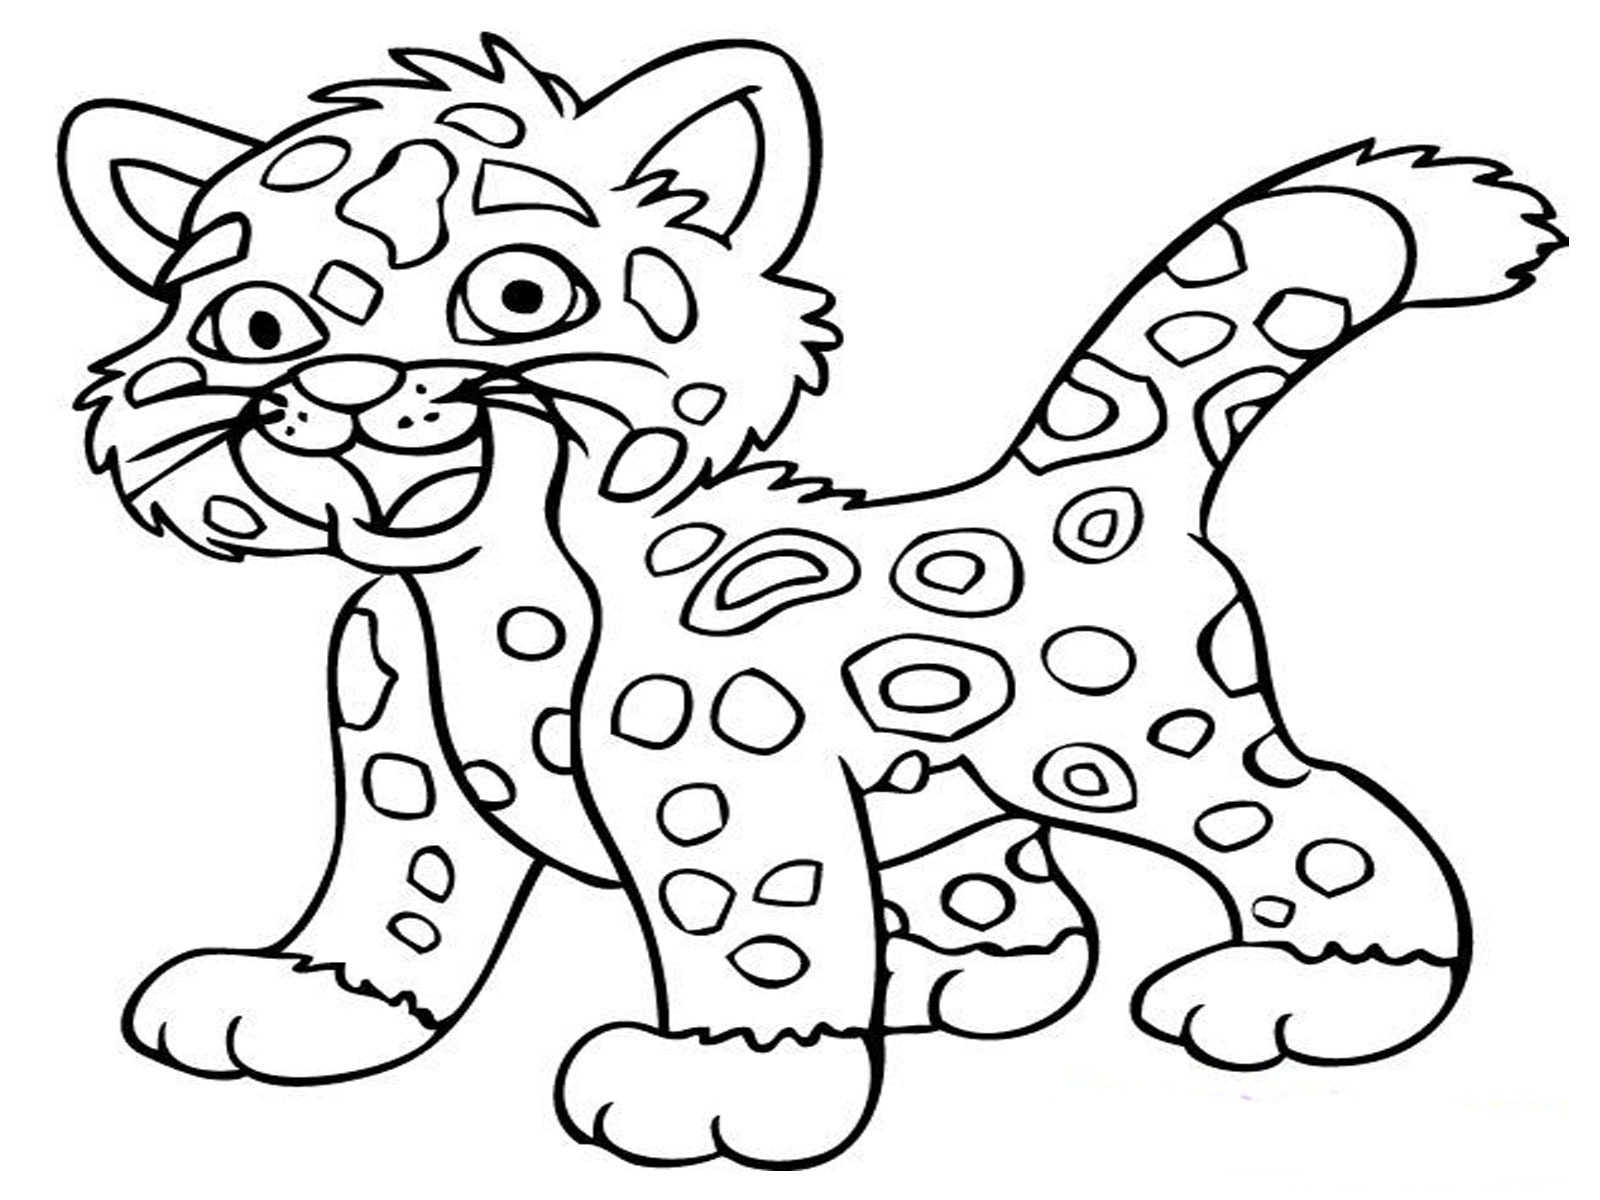 Jaguar Animal Coloring Pages Realistic Coloring Pages Coloring Pages To Print Animals